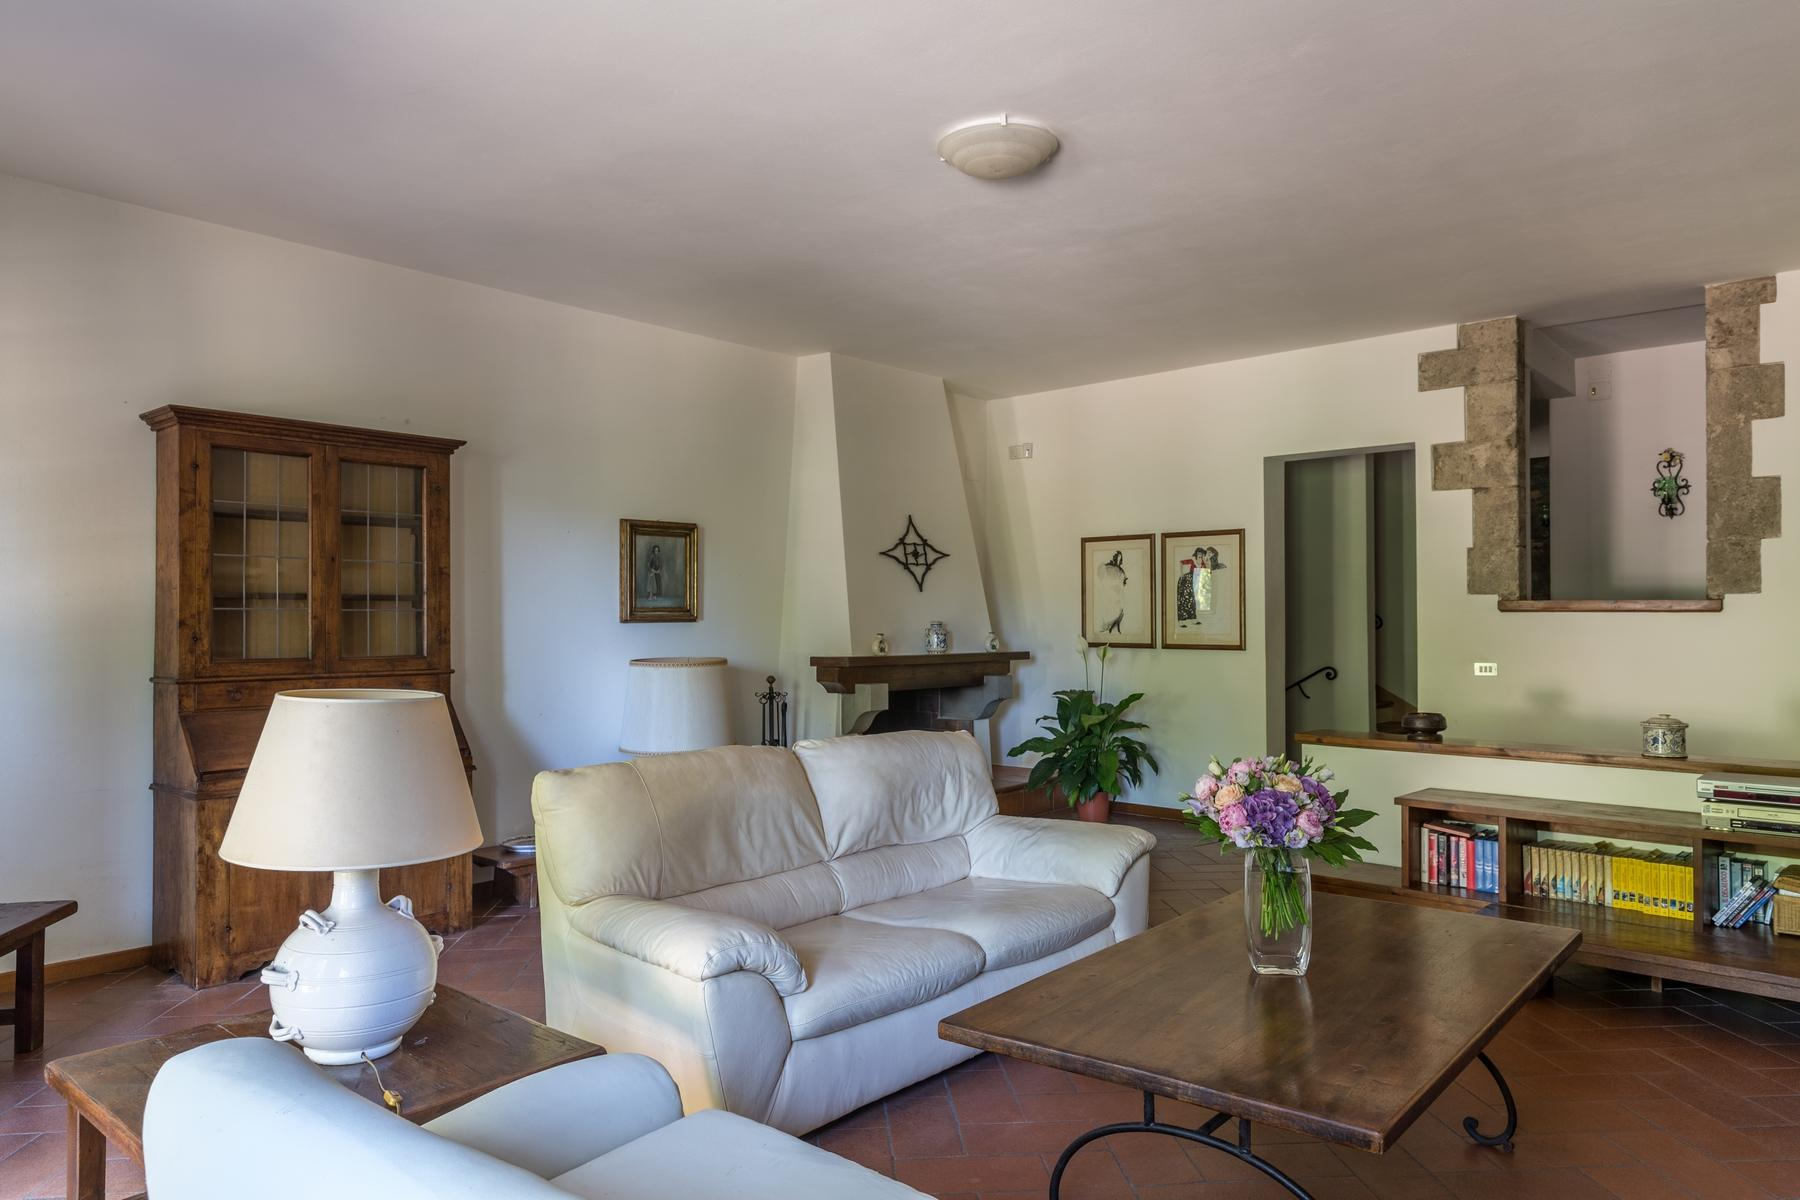 Wonderful farmhouse in the countryside near Florence - 3